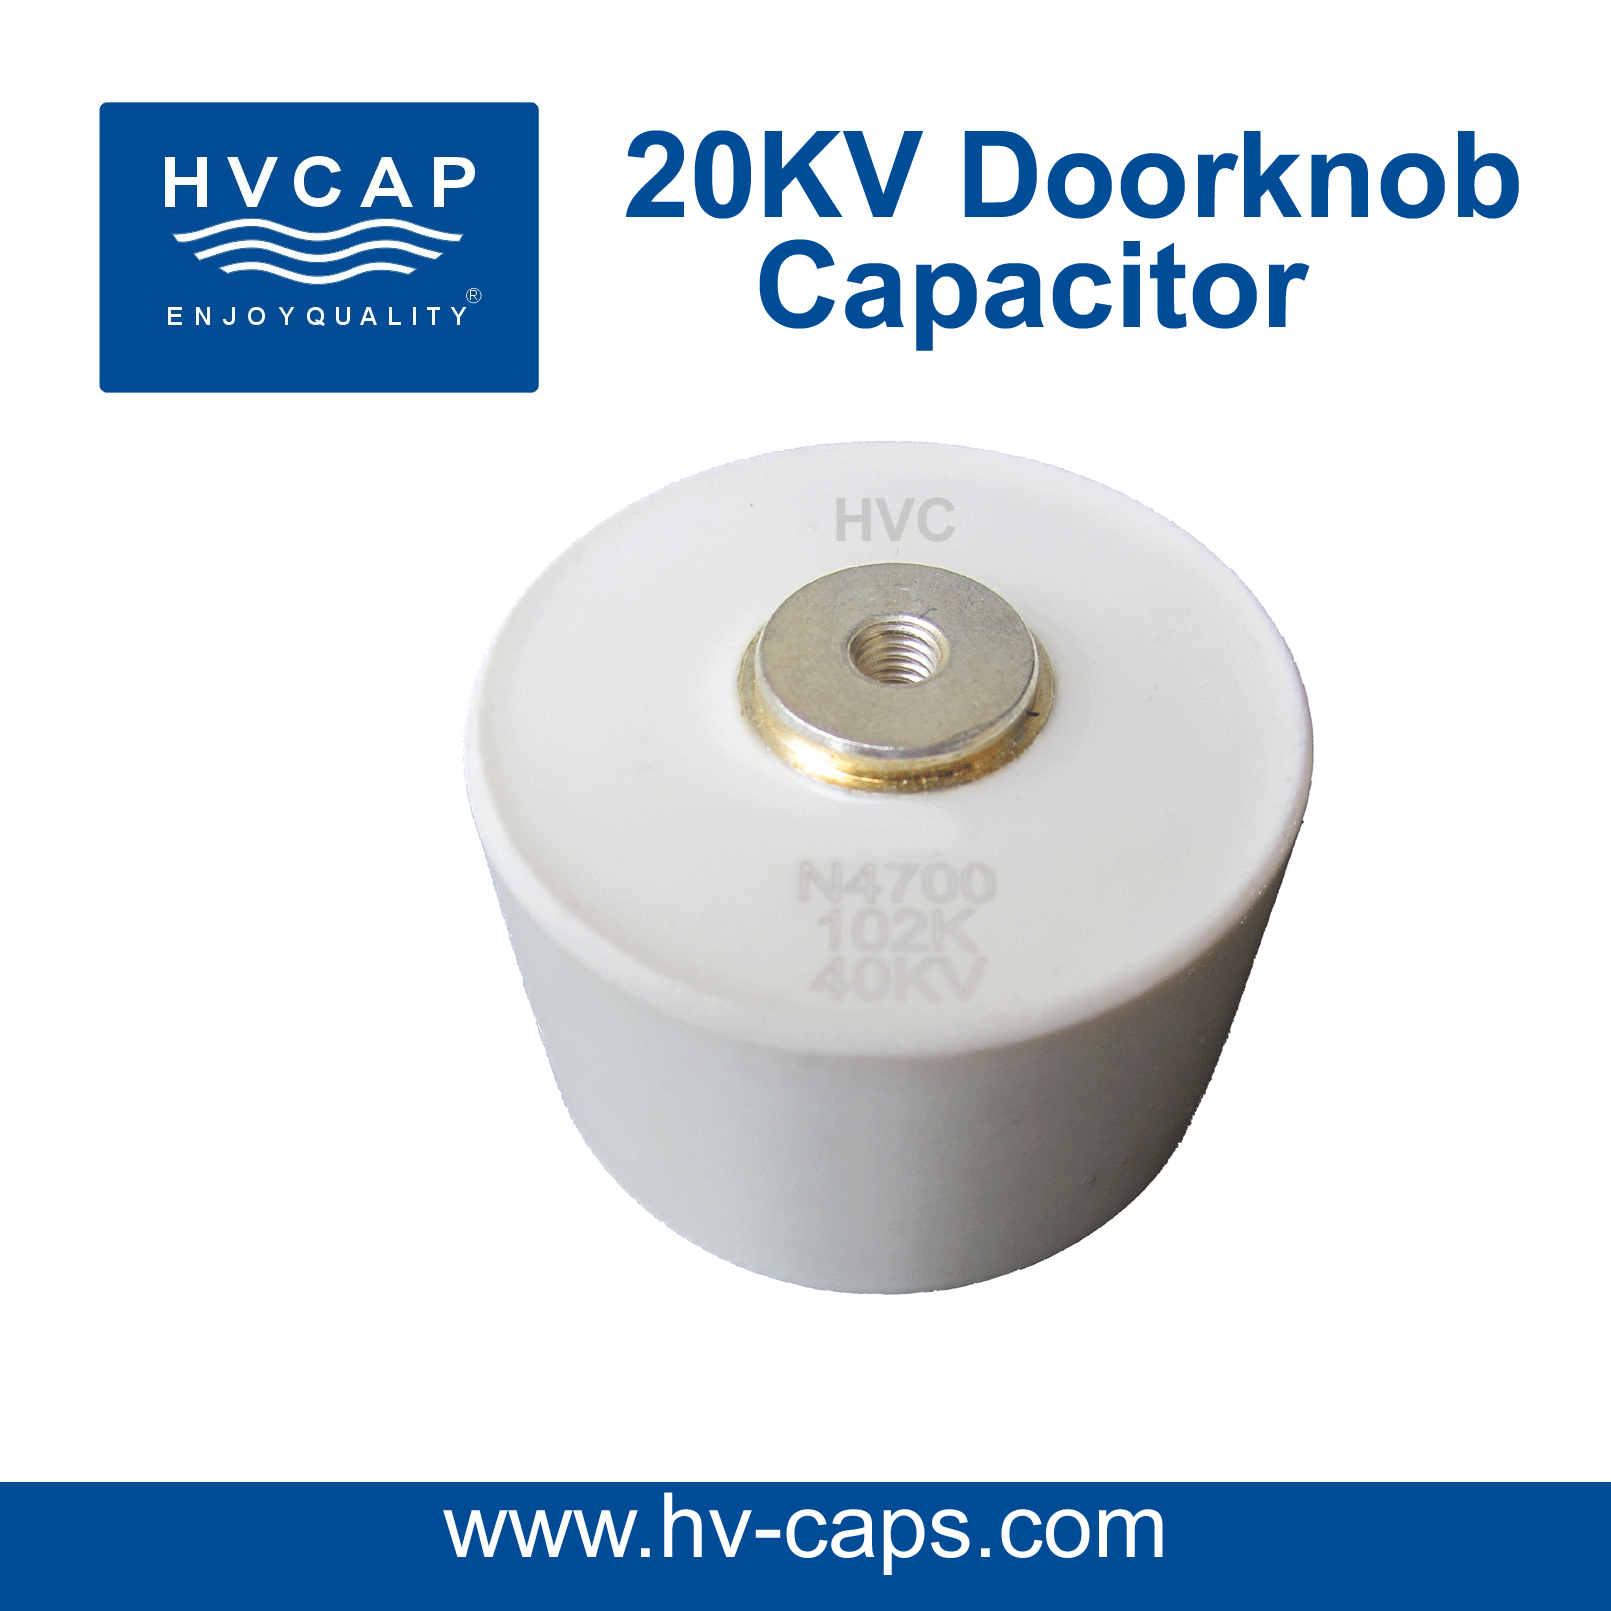 High Voltage Ceramic Doorknob Capacitor 20kv Specification